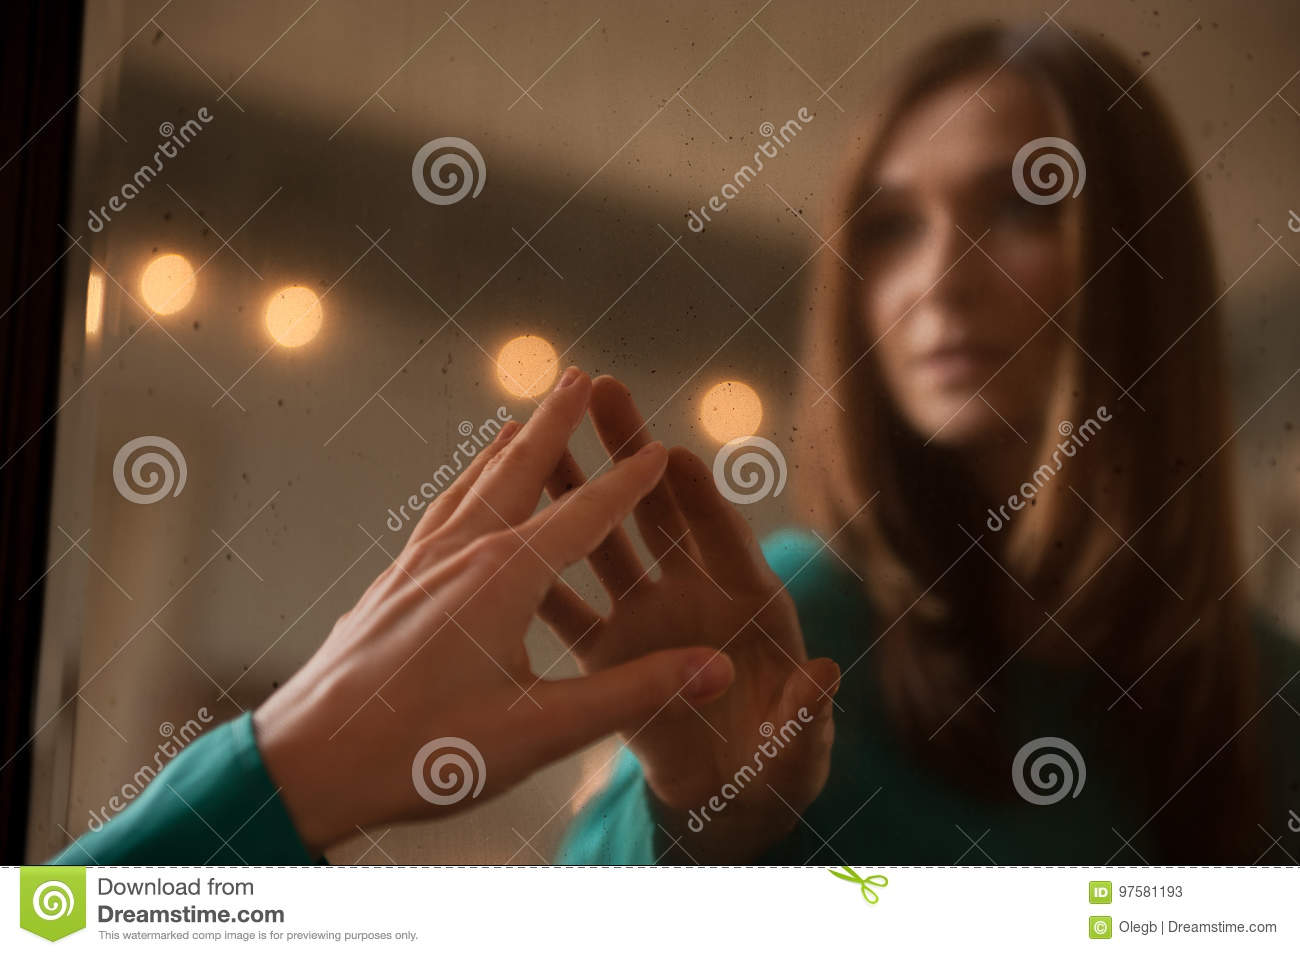 Young woman touching her own reflection in a mirror